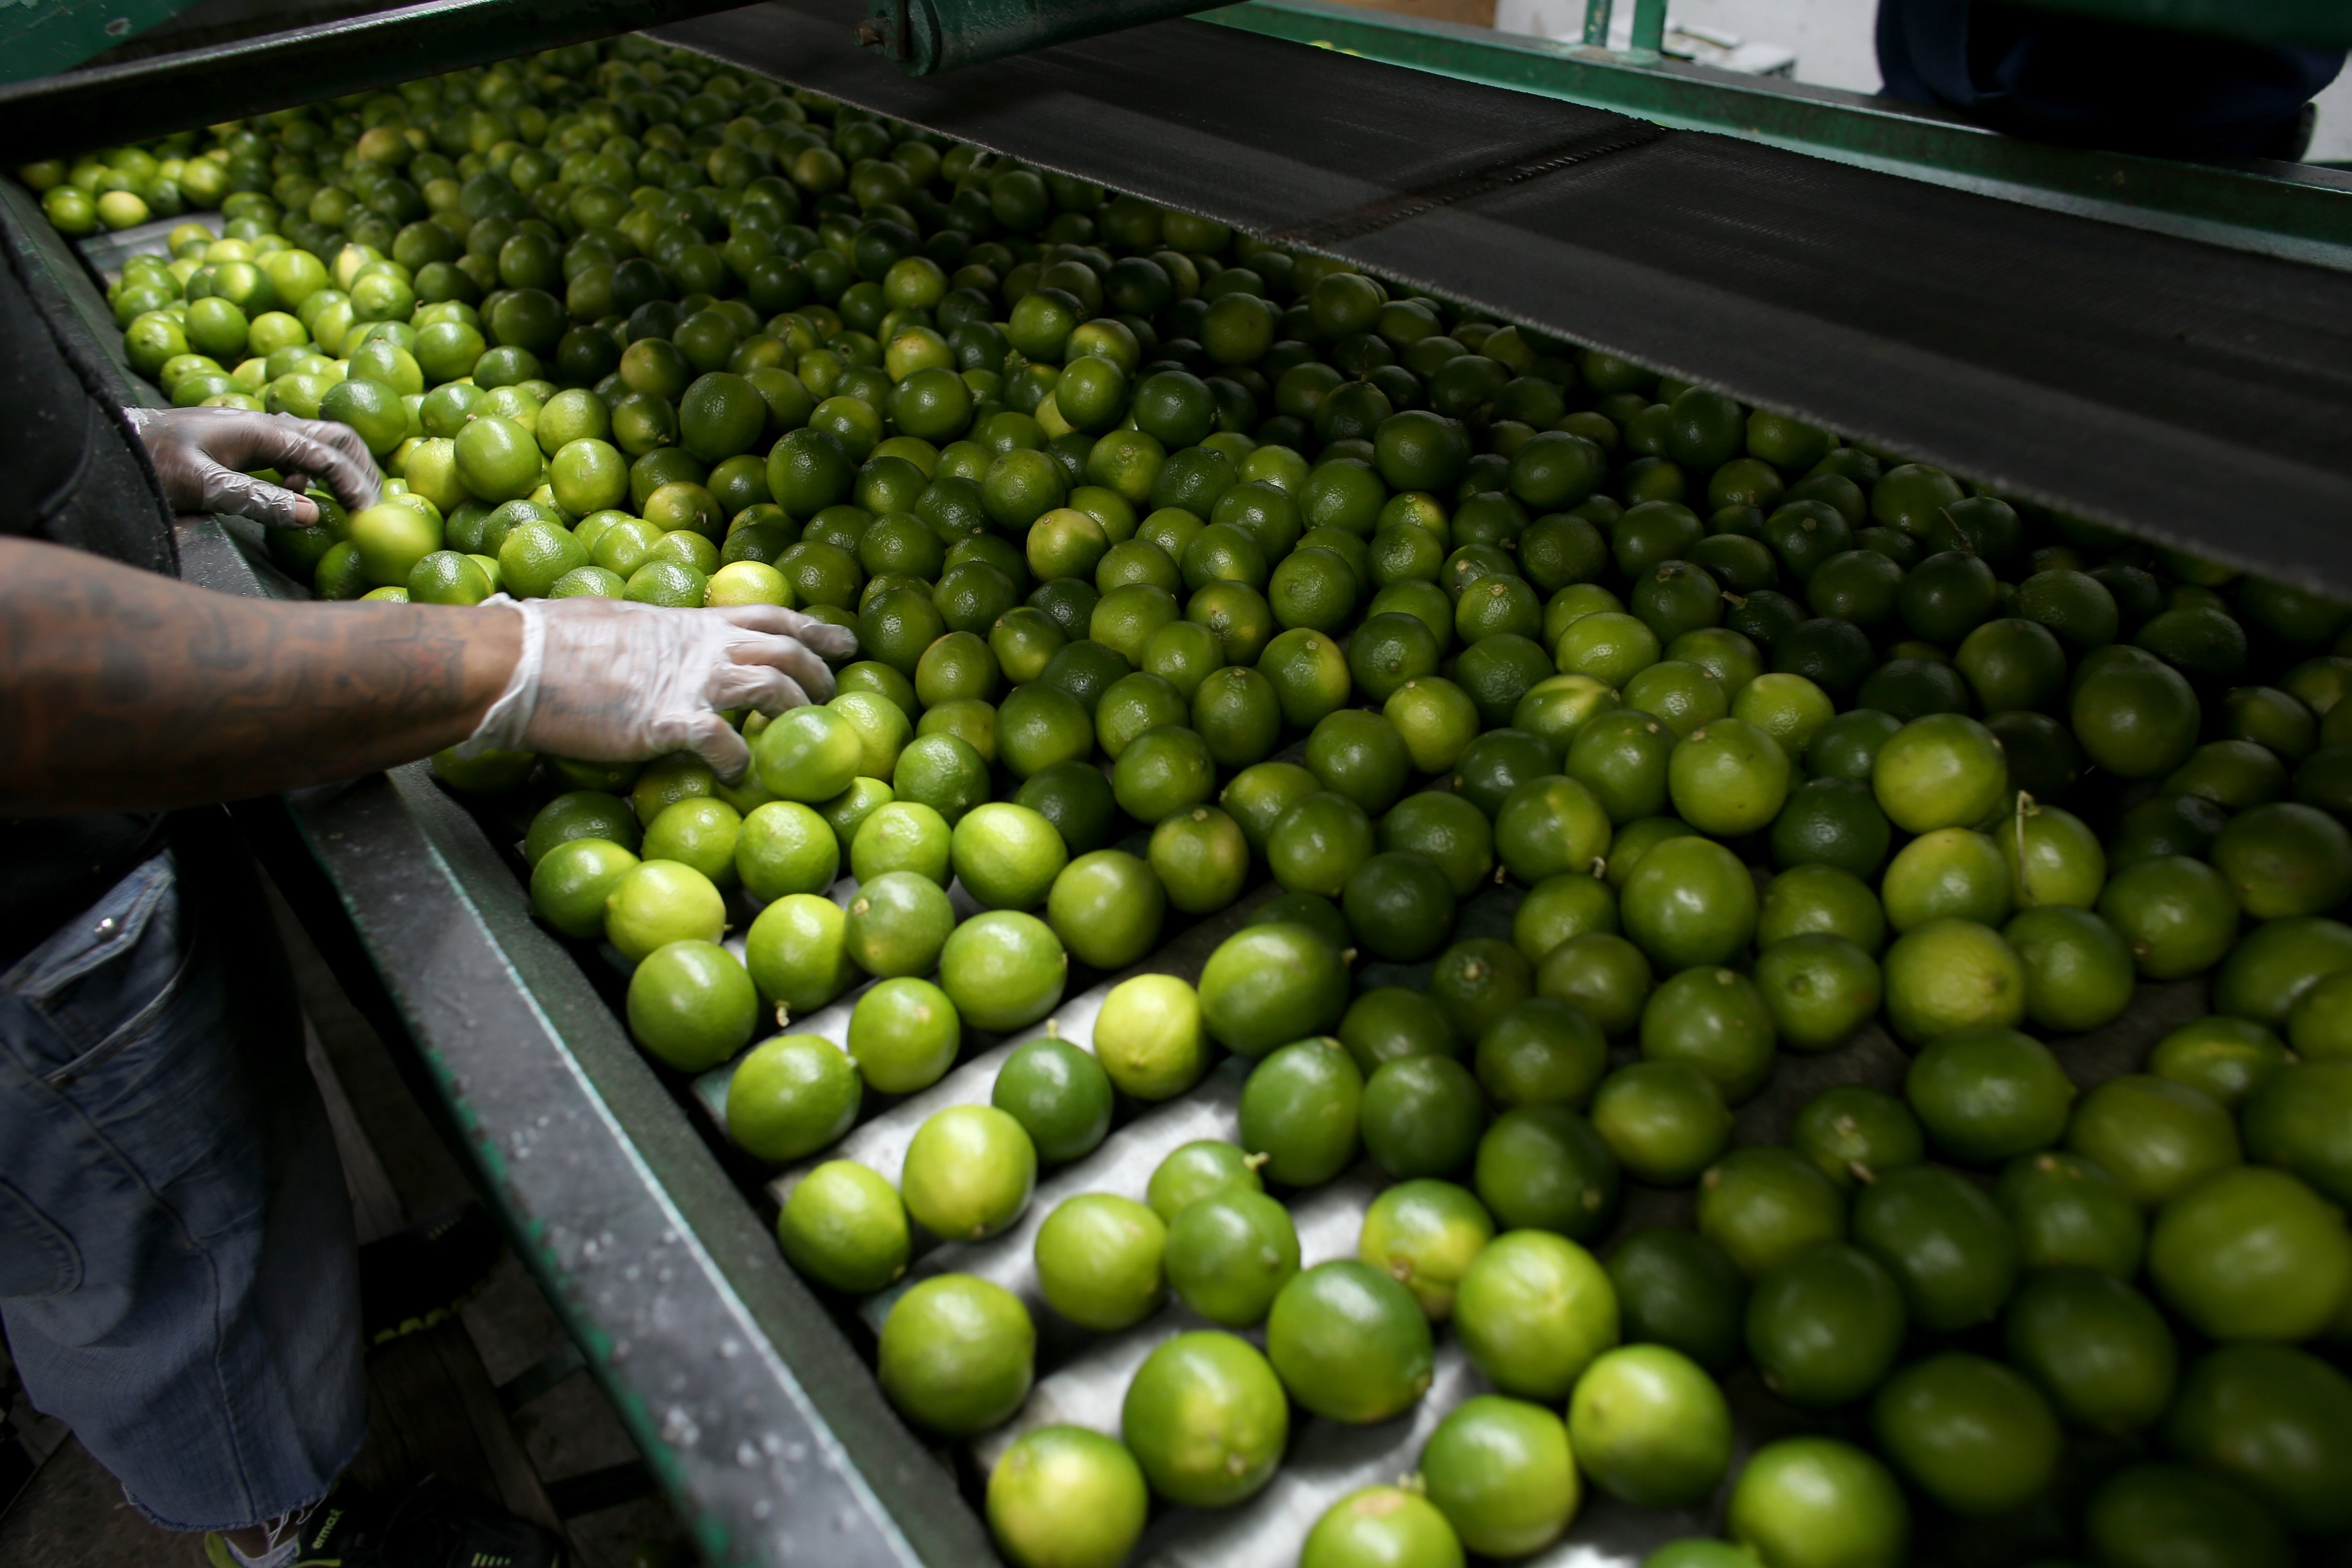 Dairoby Aldana sorts limes that have been imported from Columbia at SA Mex produce on March 26, 2014 in Miami.